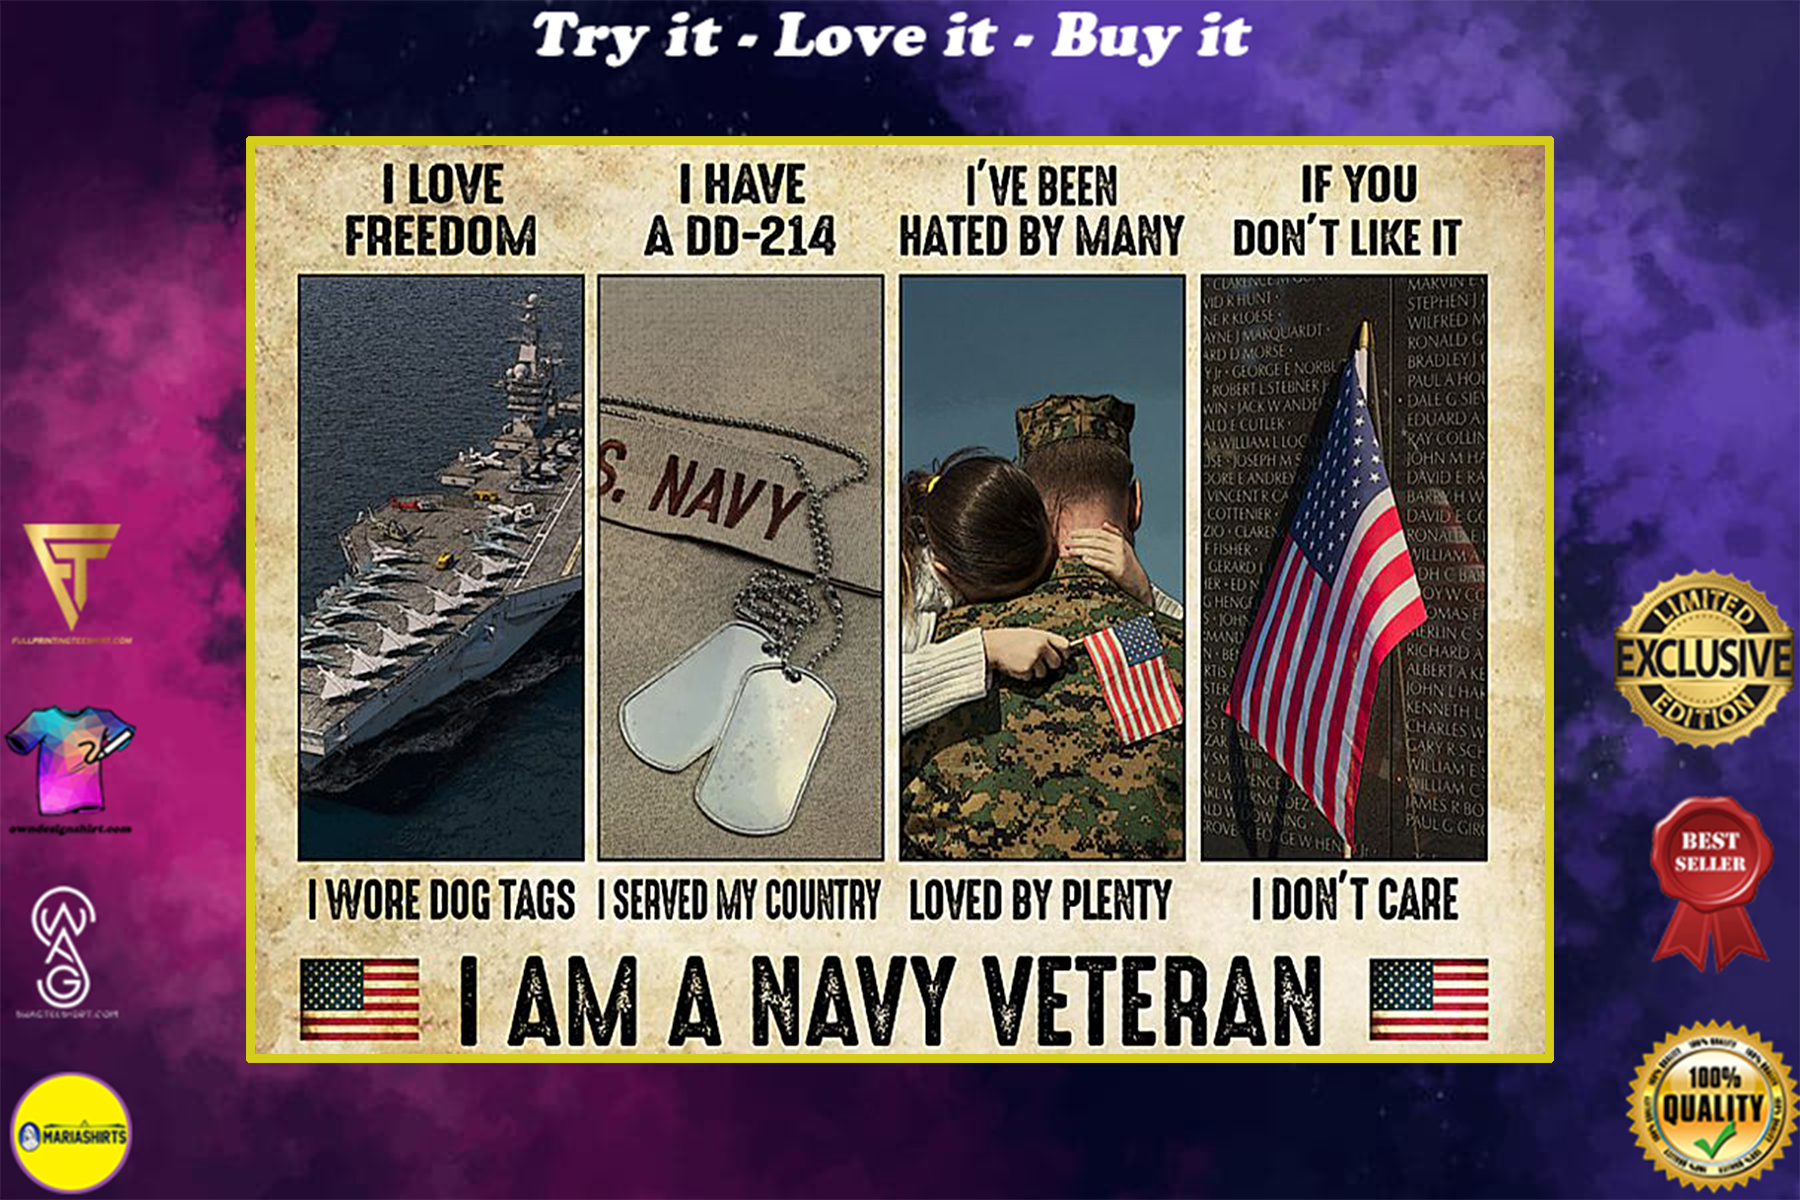 vintage i am a navy veteran i love freedom i woe dog tags i have a dd 214 i served my country poster